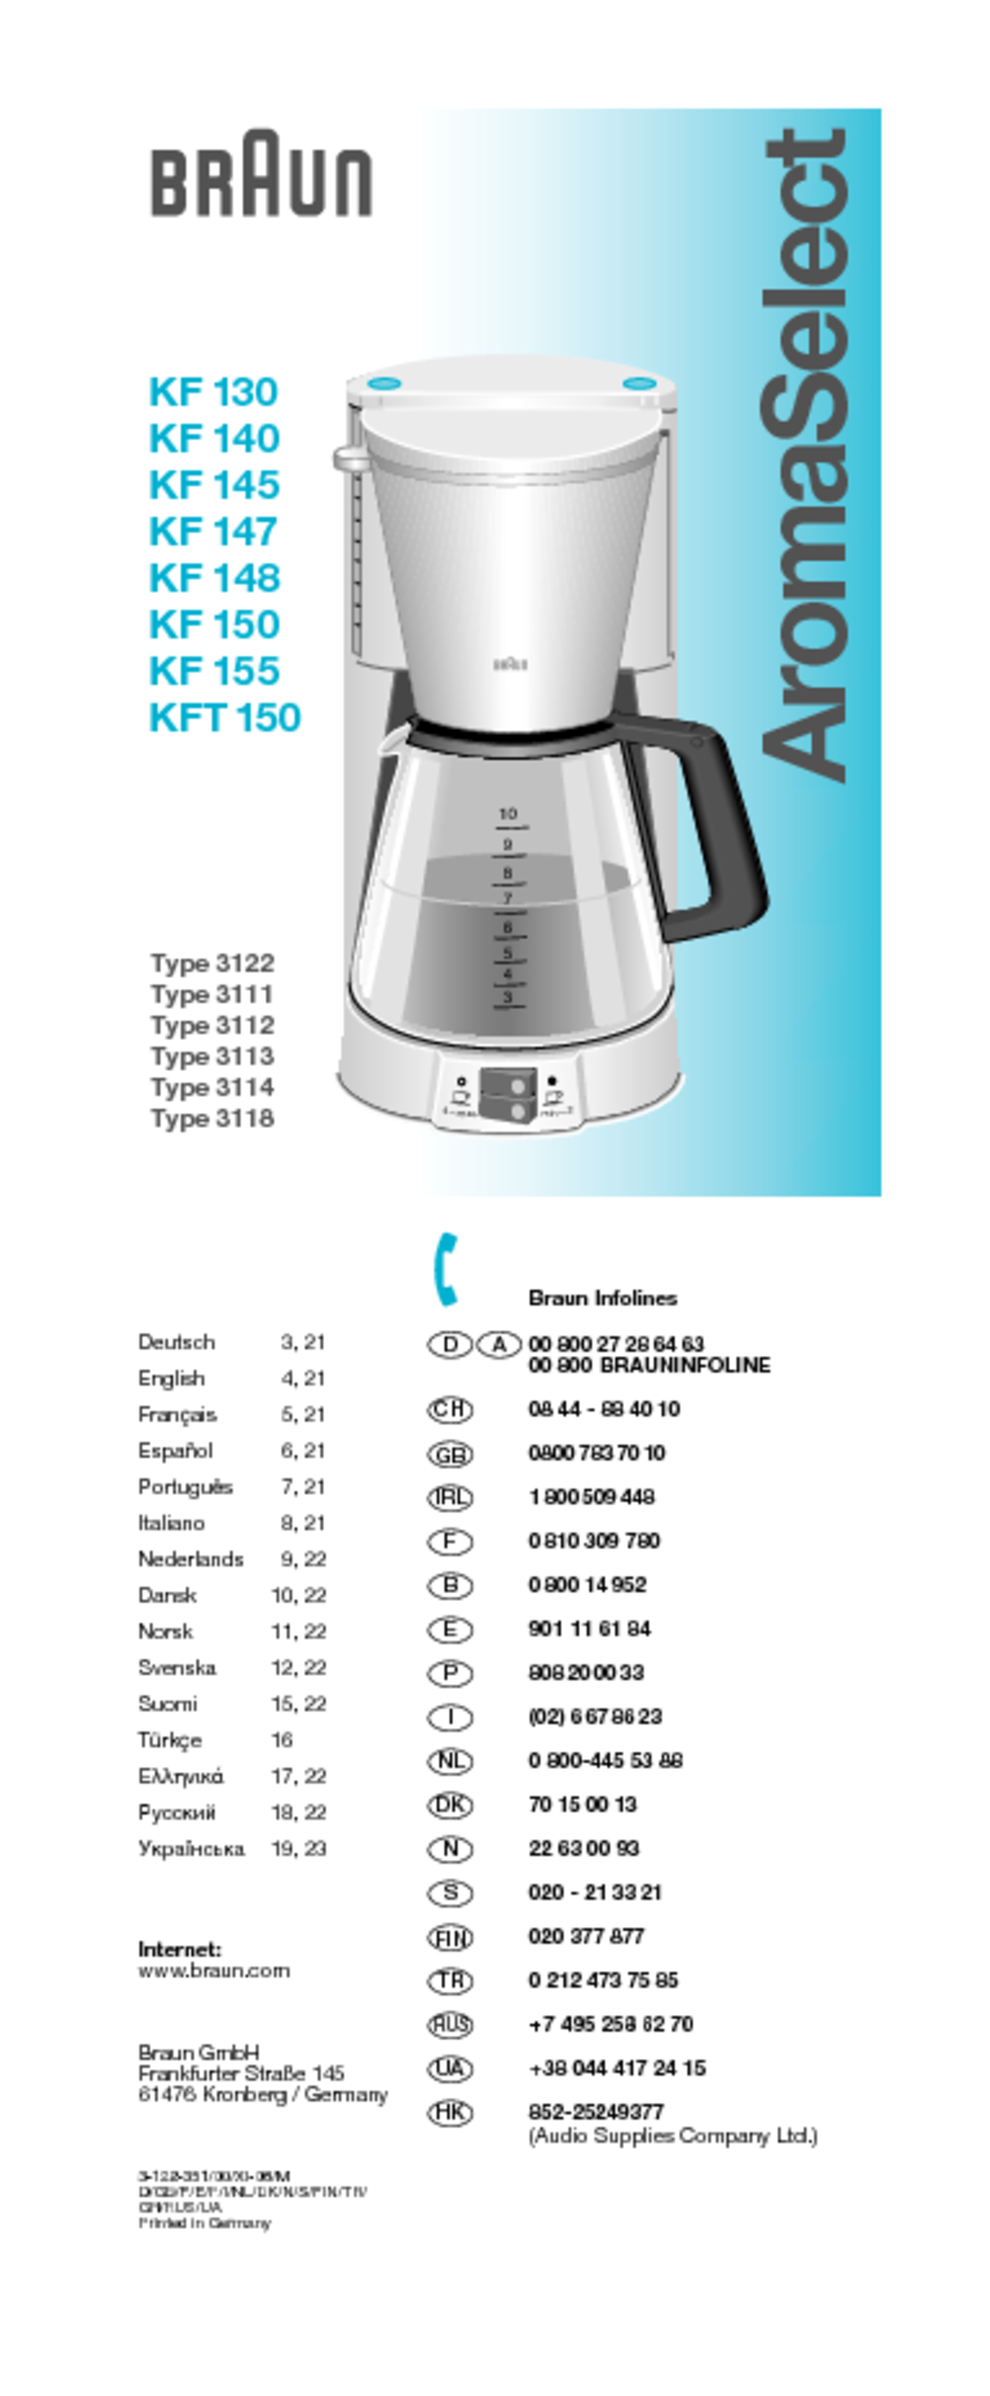 Braun Coffee Maker Directions : Download Braun 3106 Coffee Maker Manual - masterwebsites